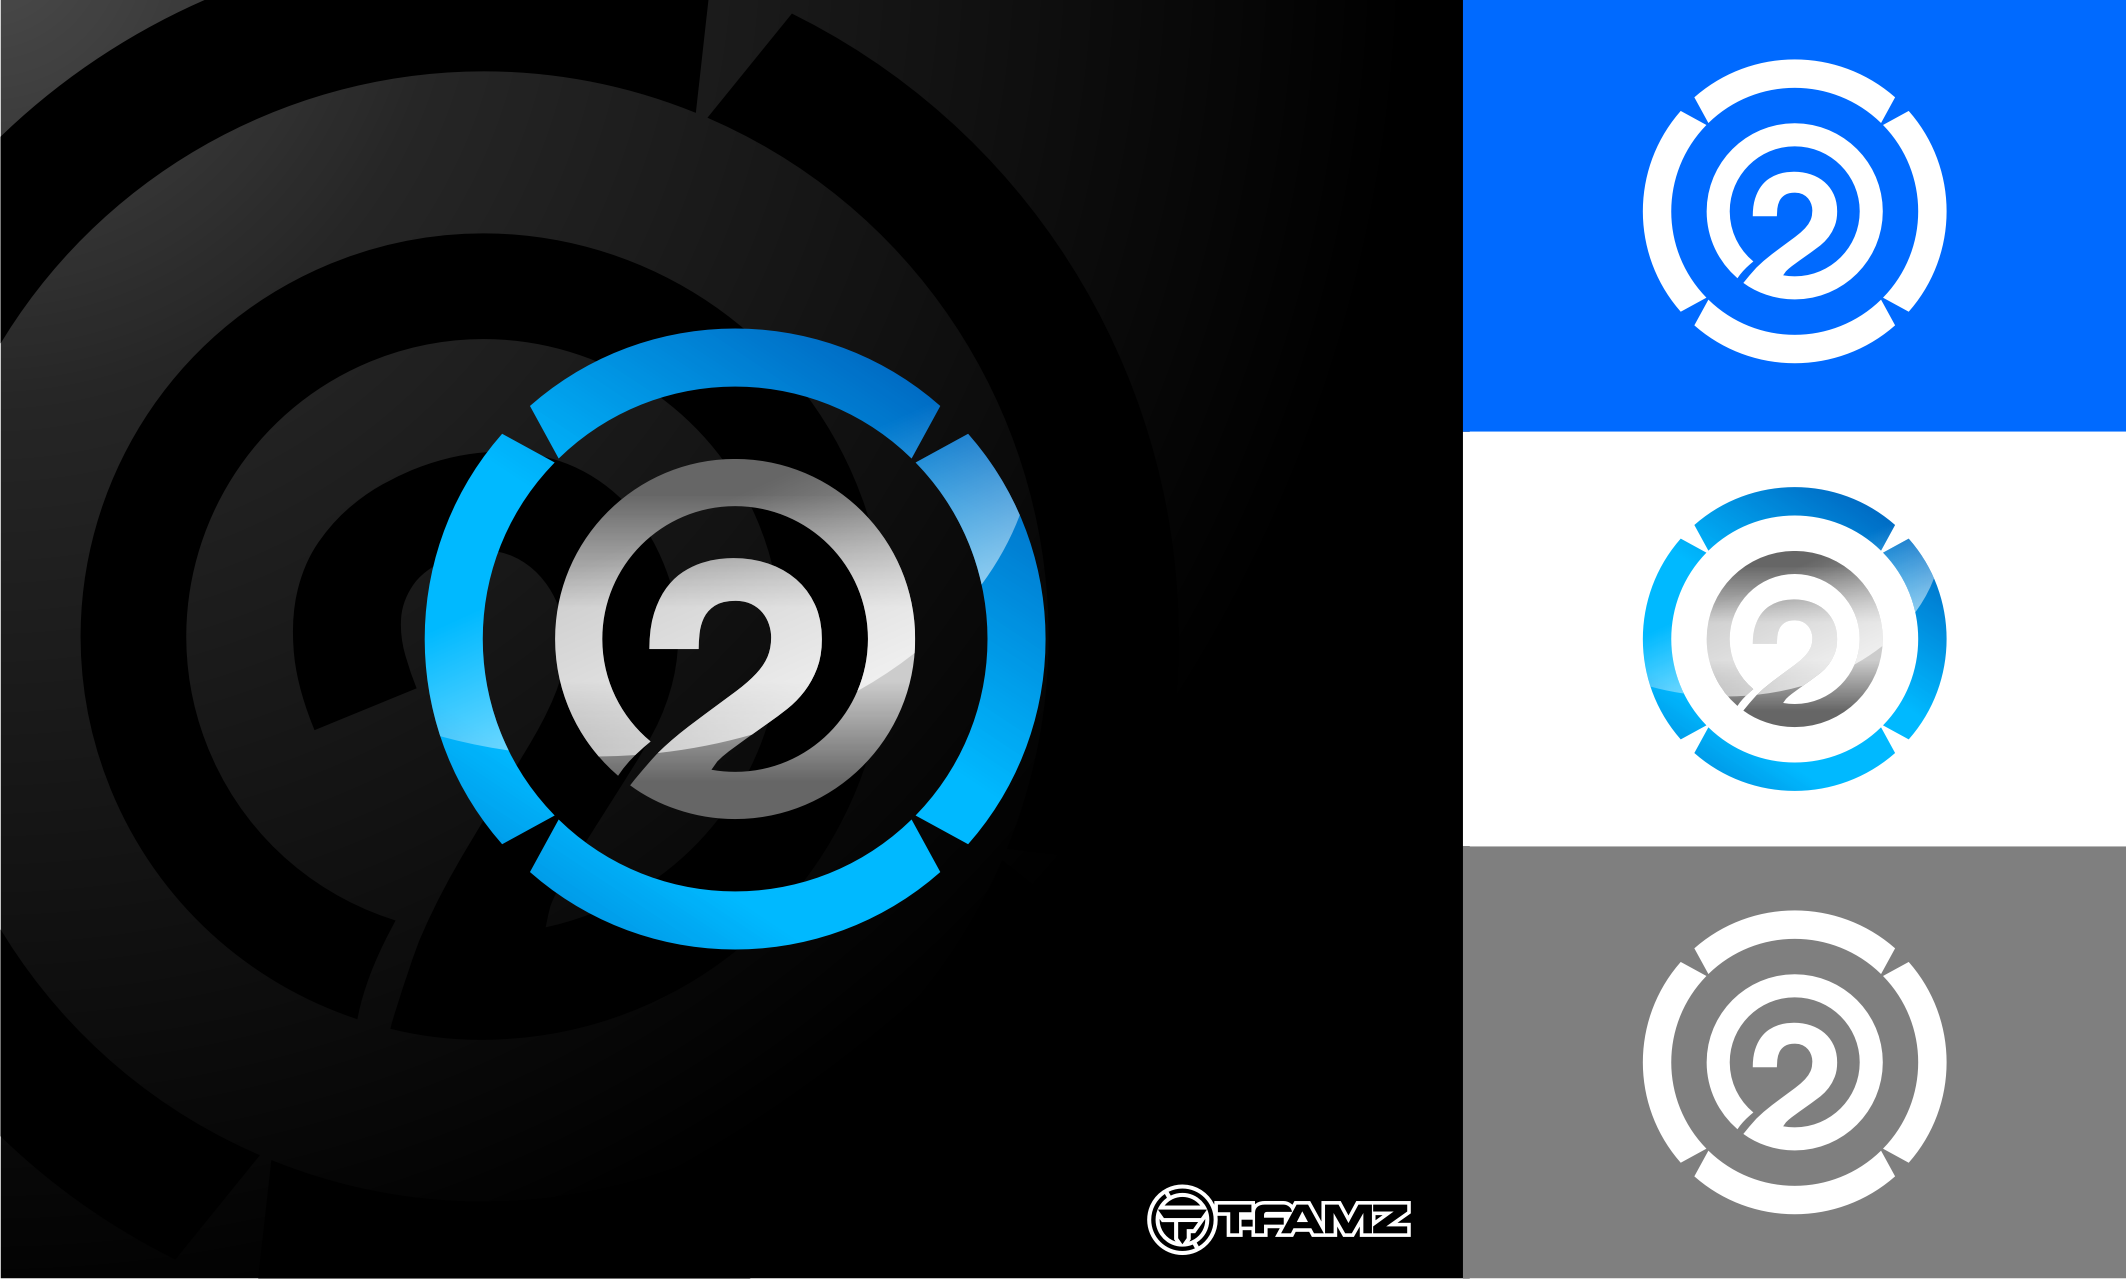 Logo Design by Tille Famz - Entry No. 60 in the Logo Design Contest Artistic Logo Design for O2.